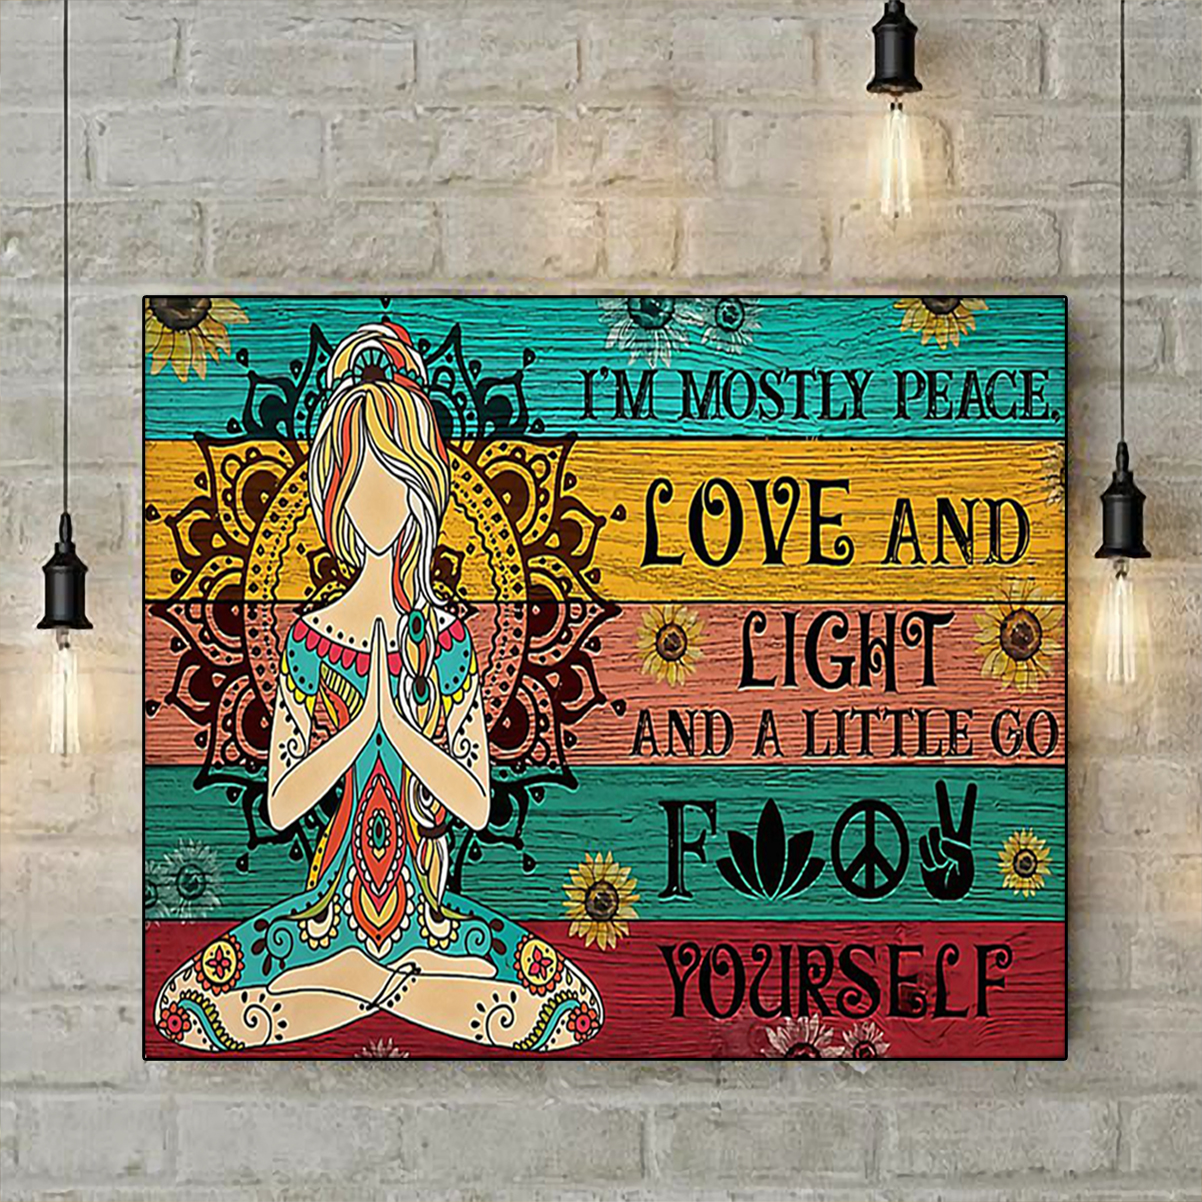 Sunflower yoga girl I am mostly peace love and light poster A3